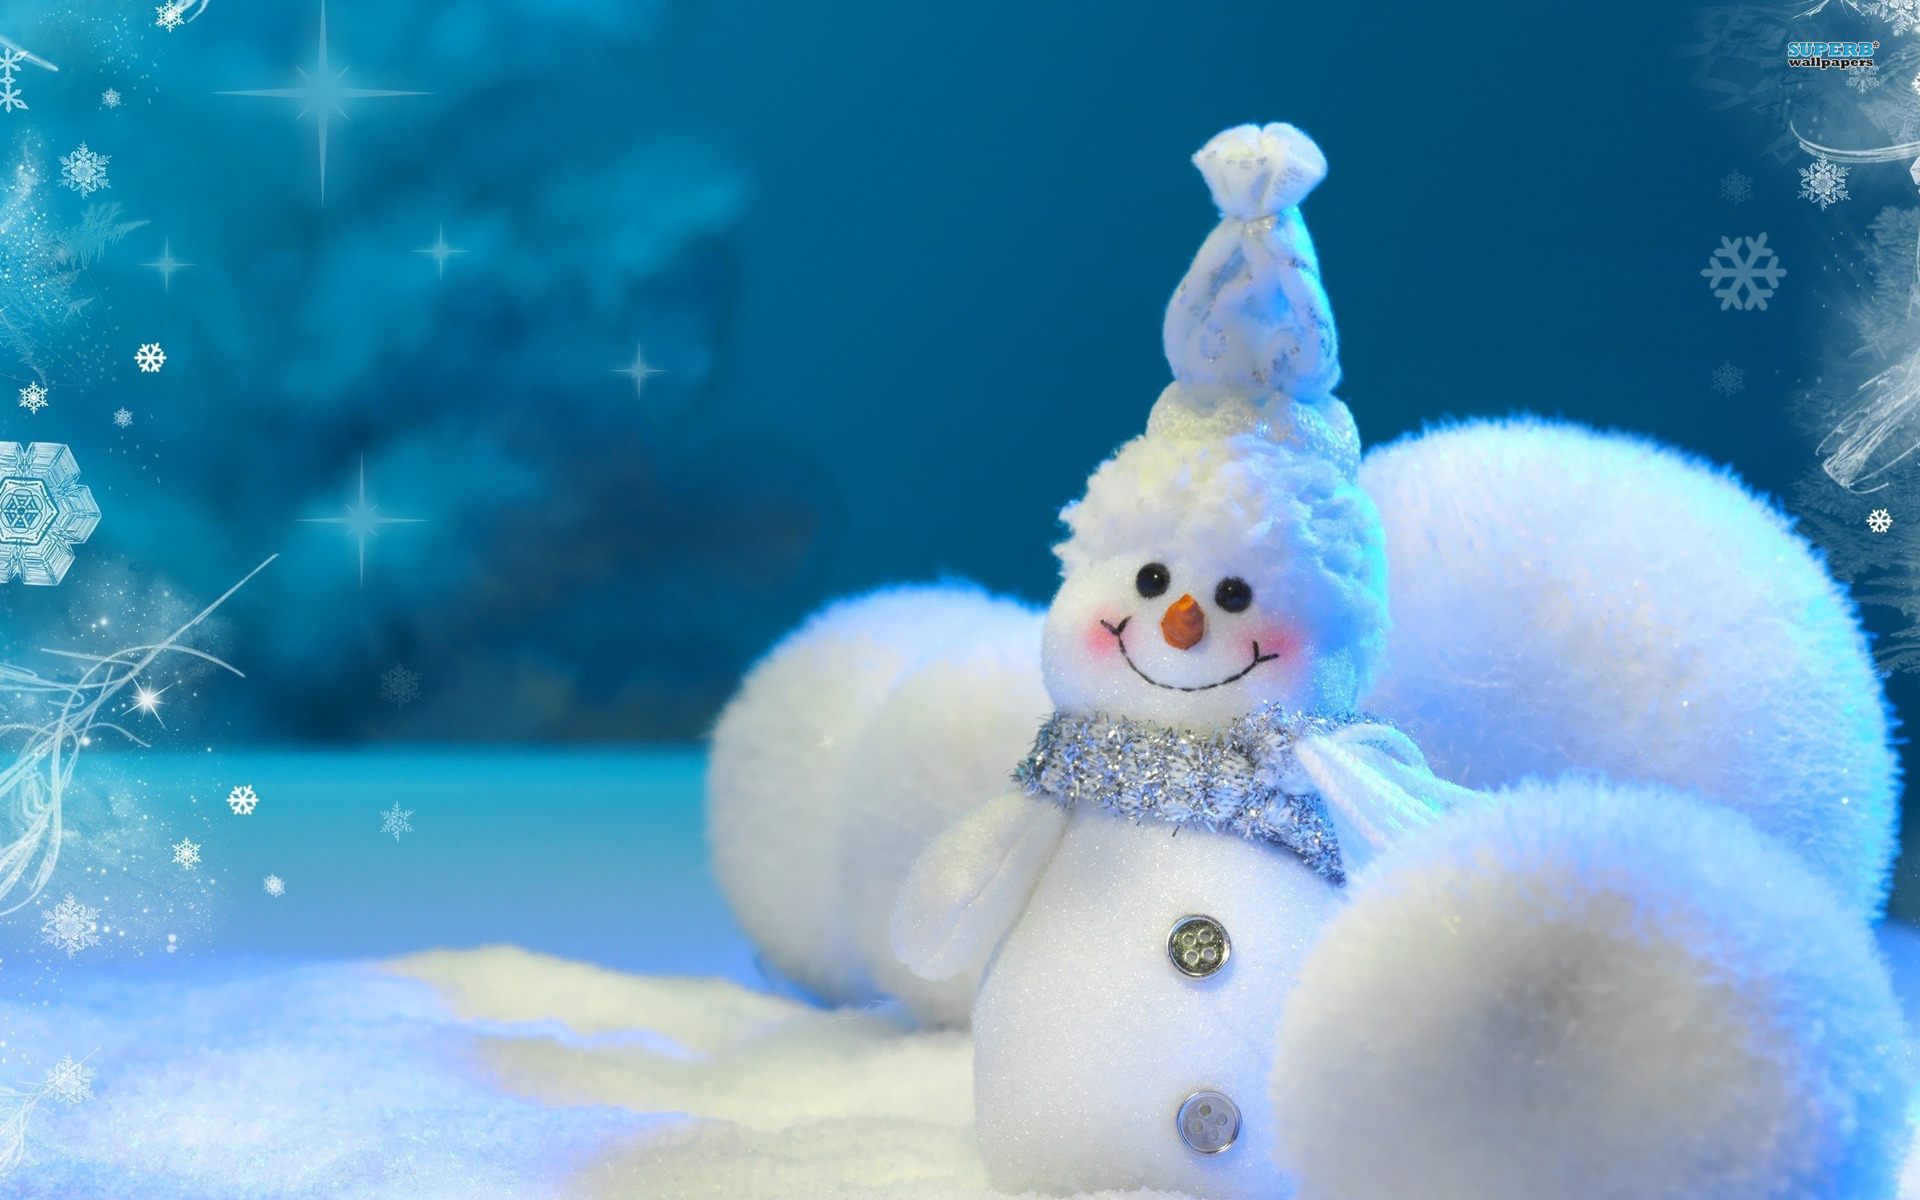 Christmas Snowman Wallpaper High Quality 462   HD 1920x1200